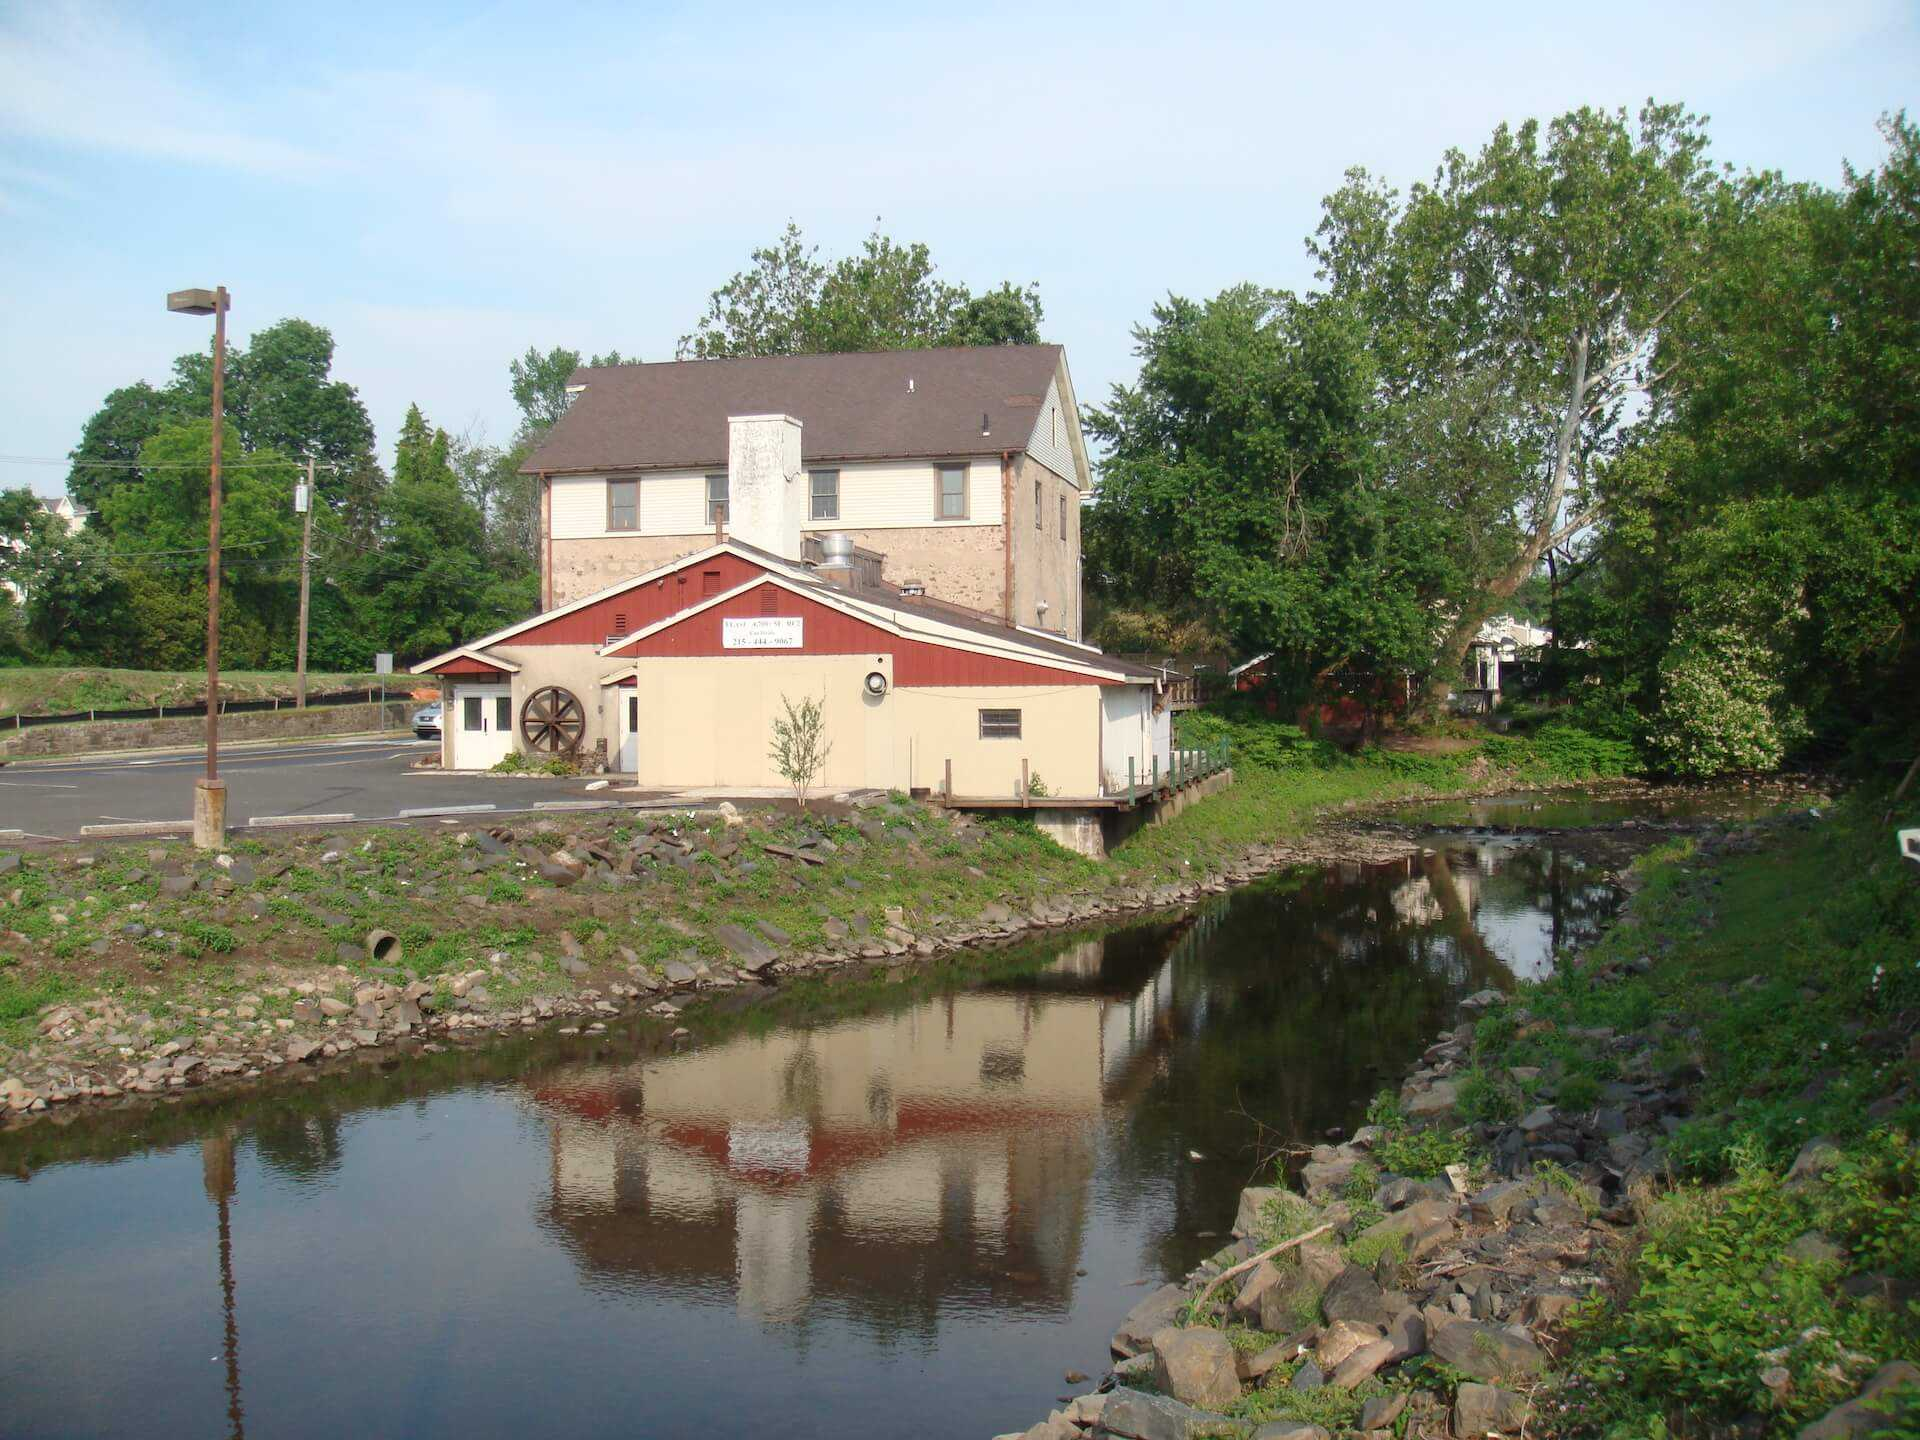 the Old Mill along the riverside